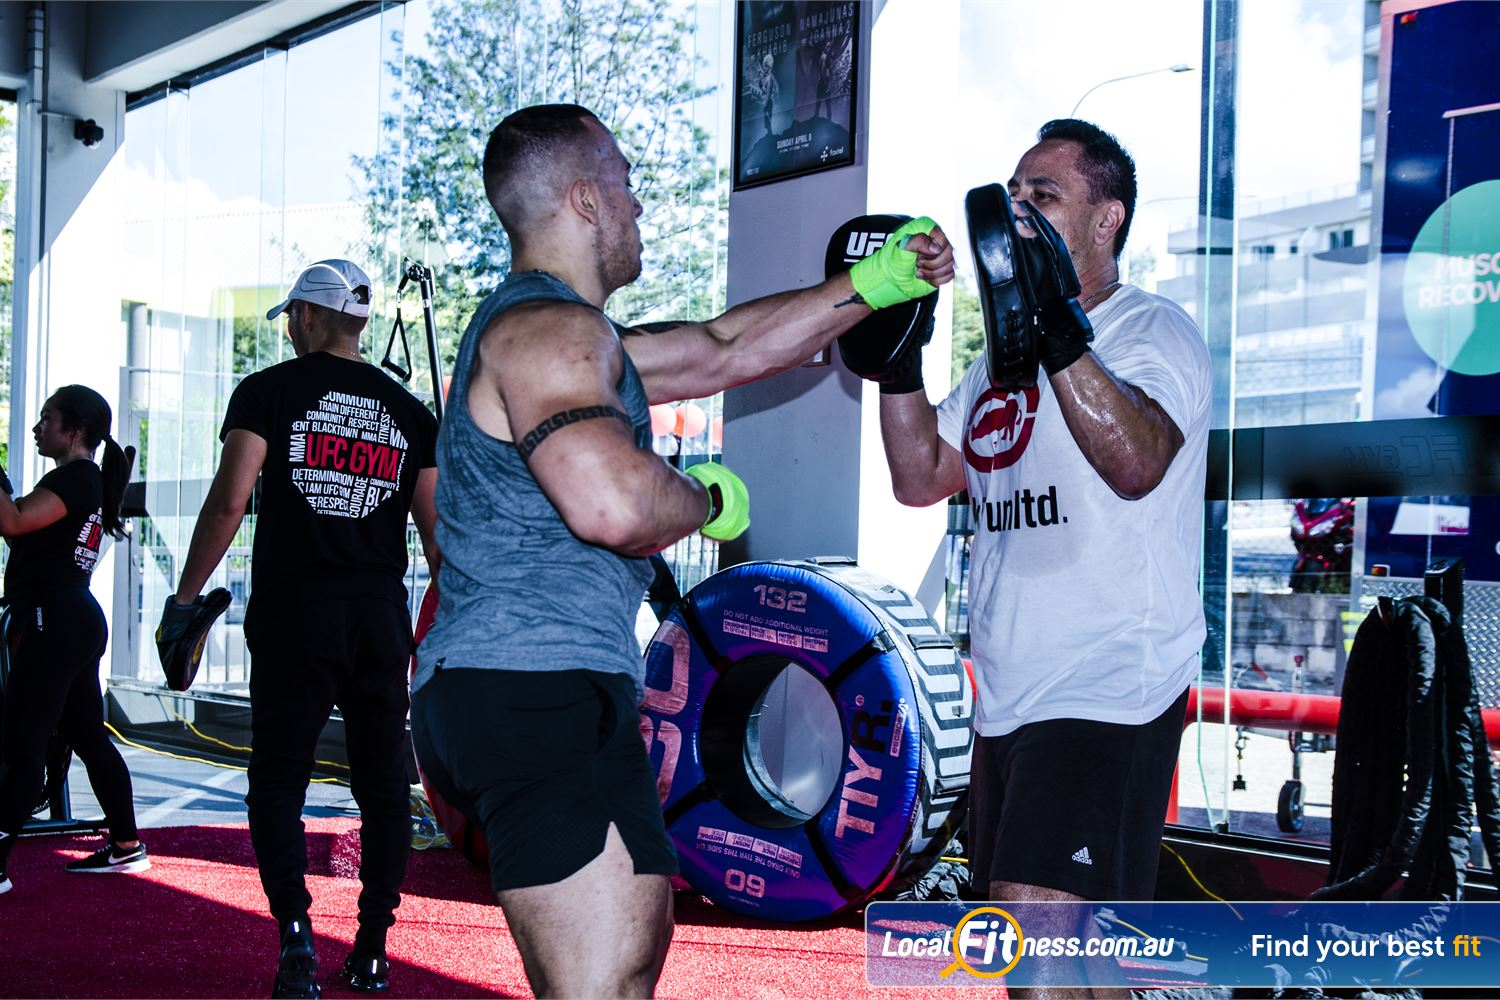 UFC Gym Blacktown Our Blacktown personal trainers can take your training to the next level.